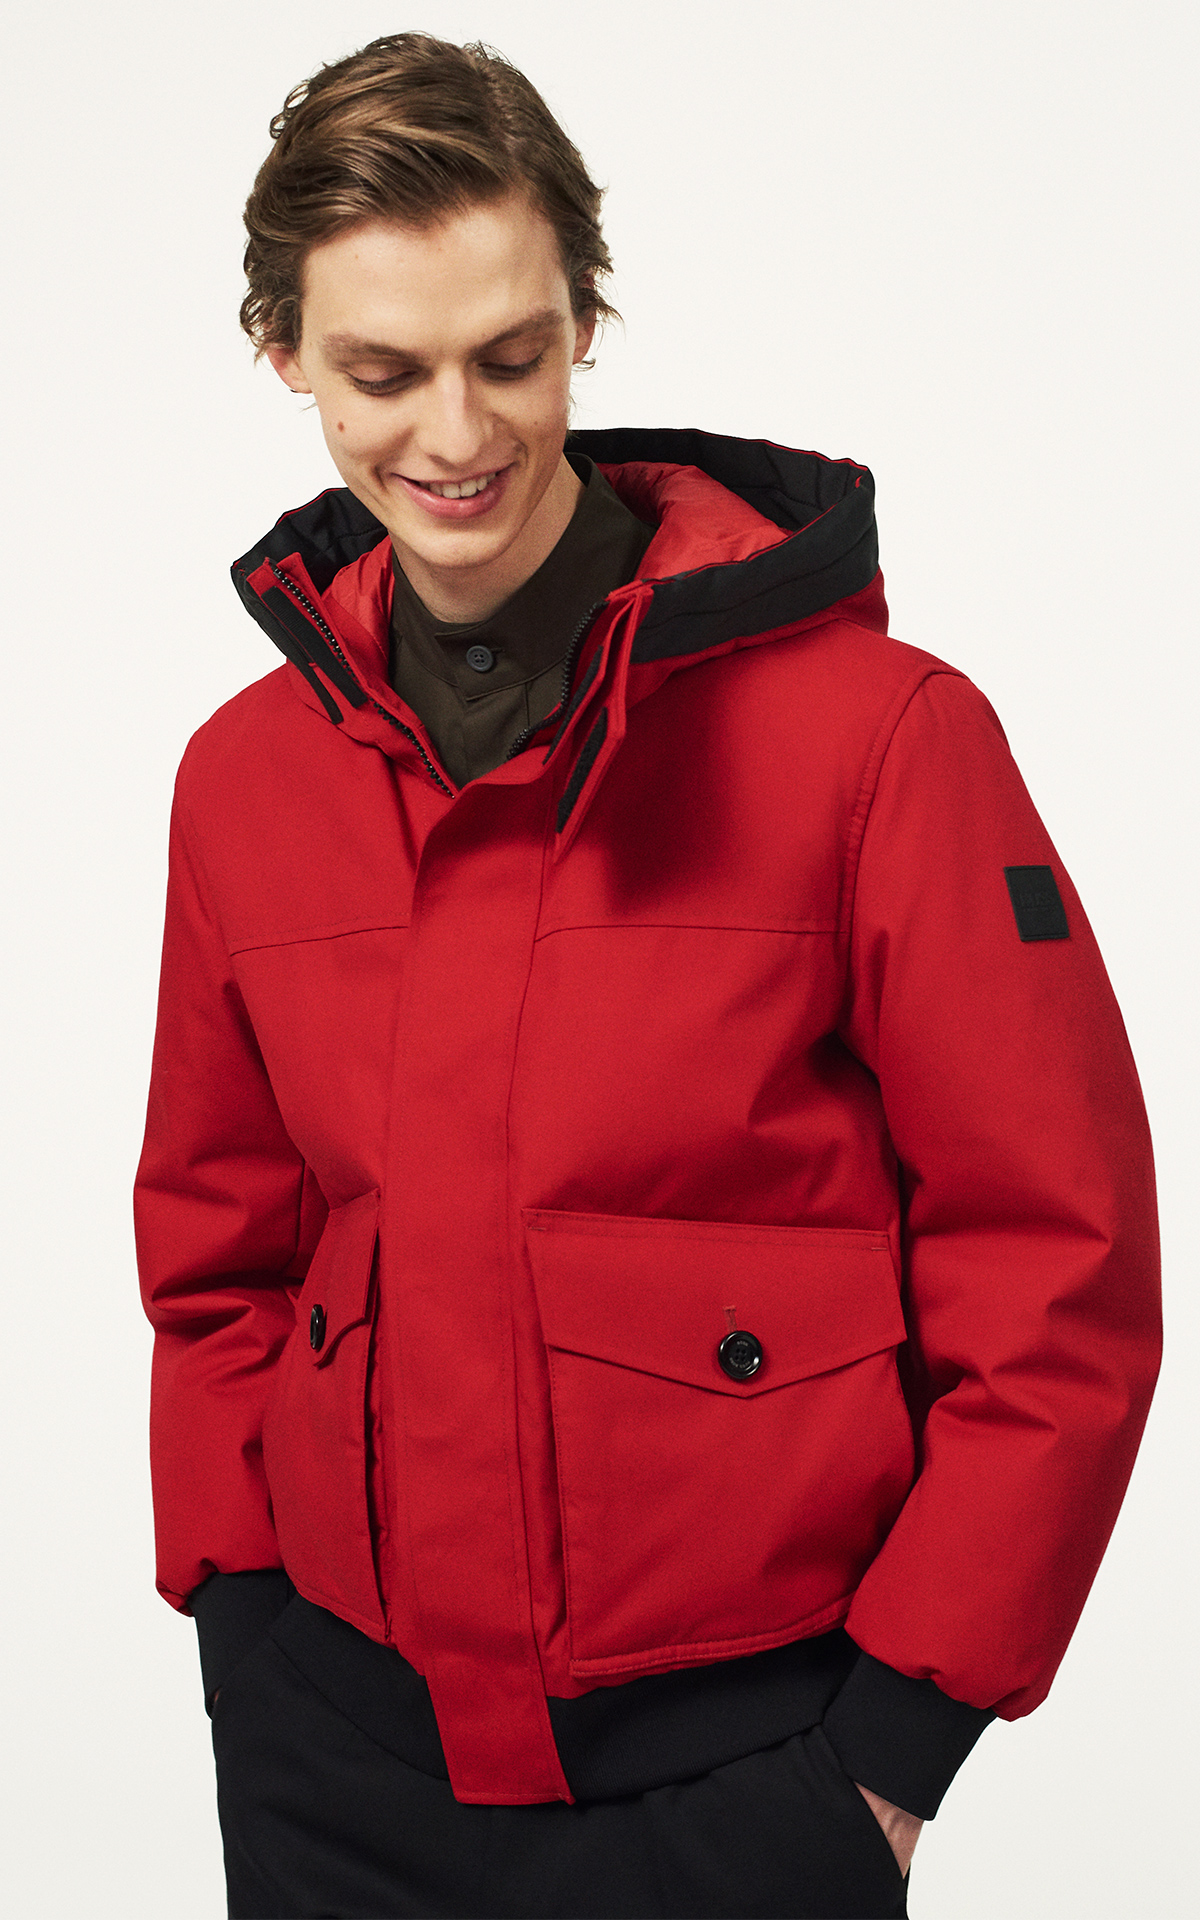 Man with a red jacket